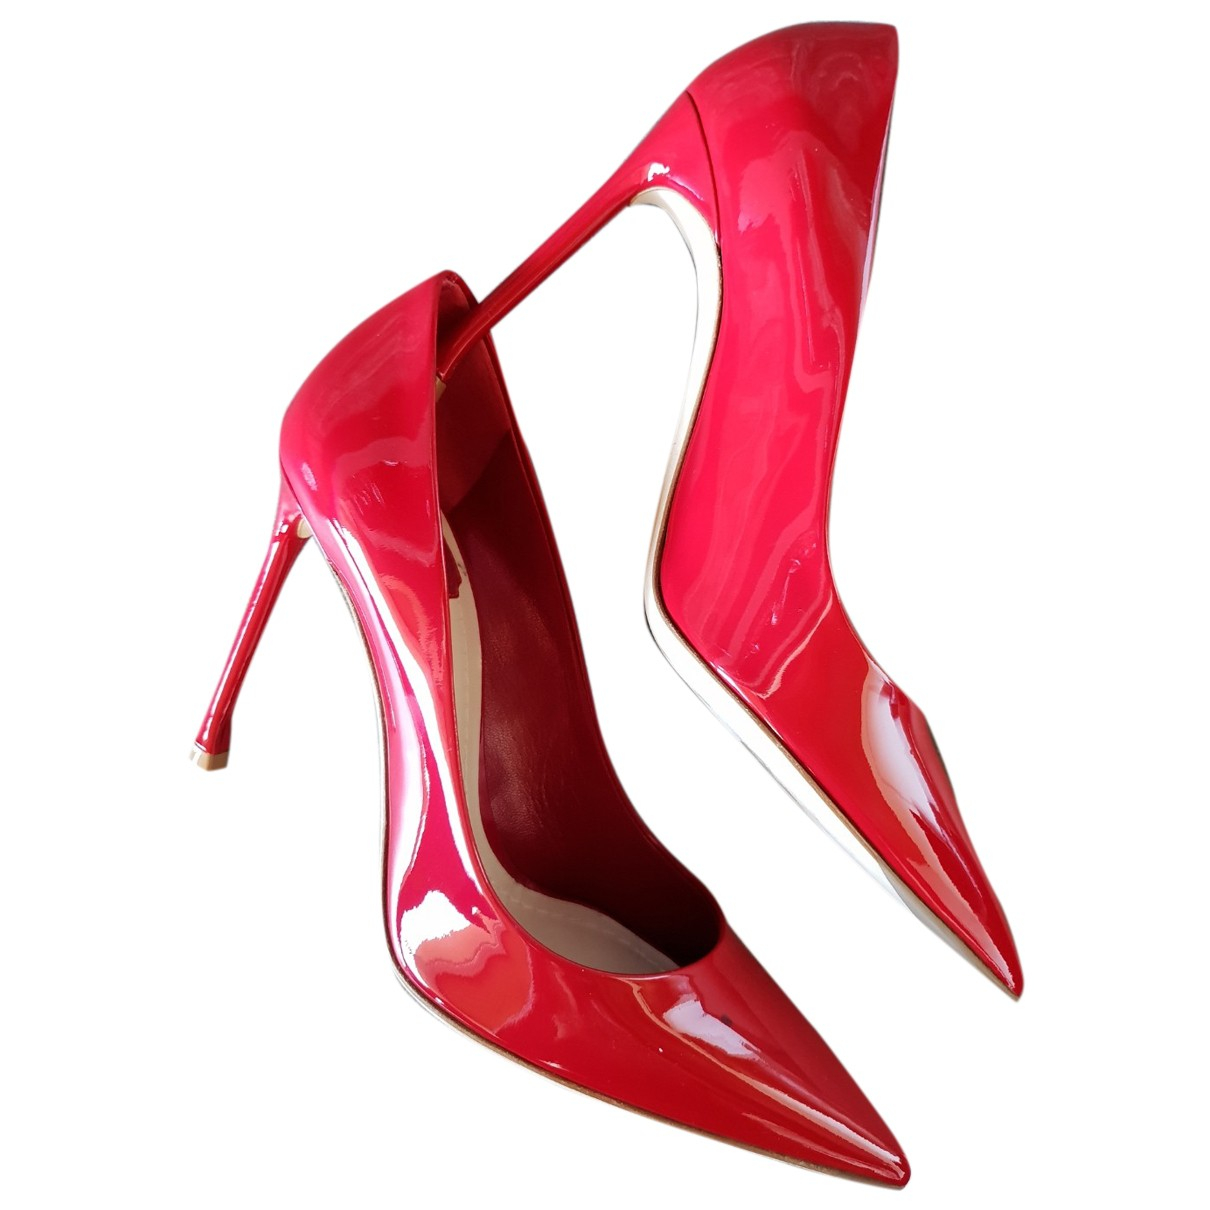 Dior Dior Cherie Pointy Pump Red Patent leather Heels for Women 38 EU